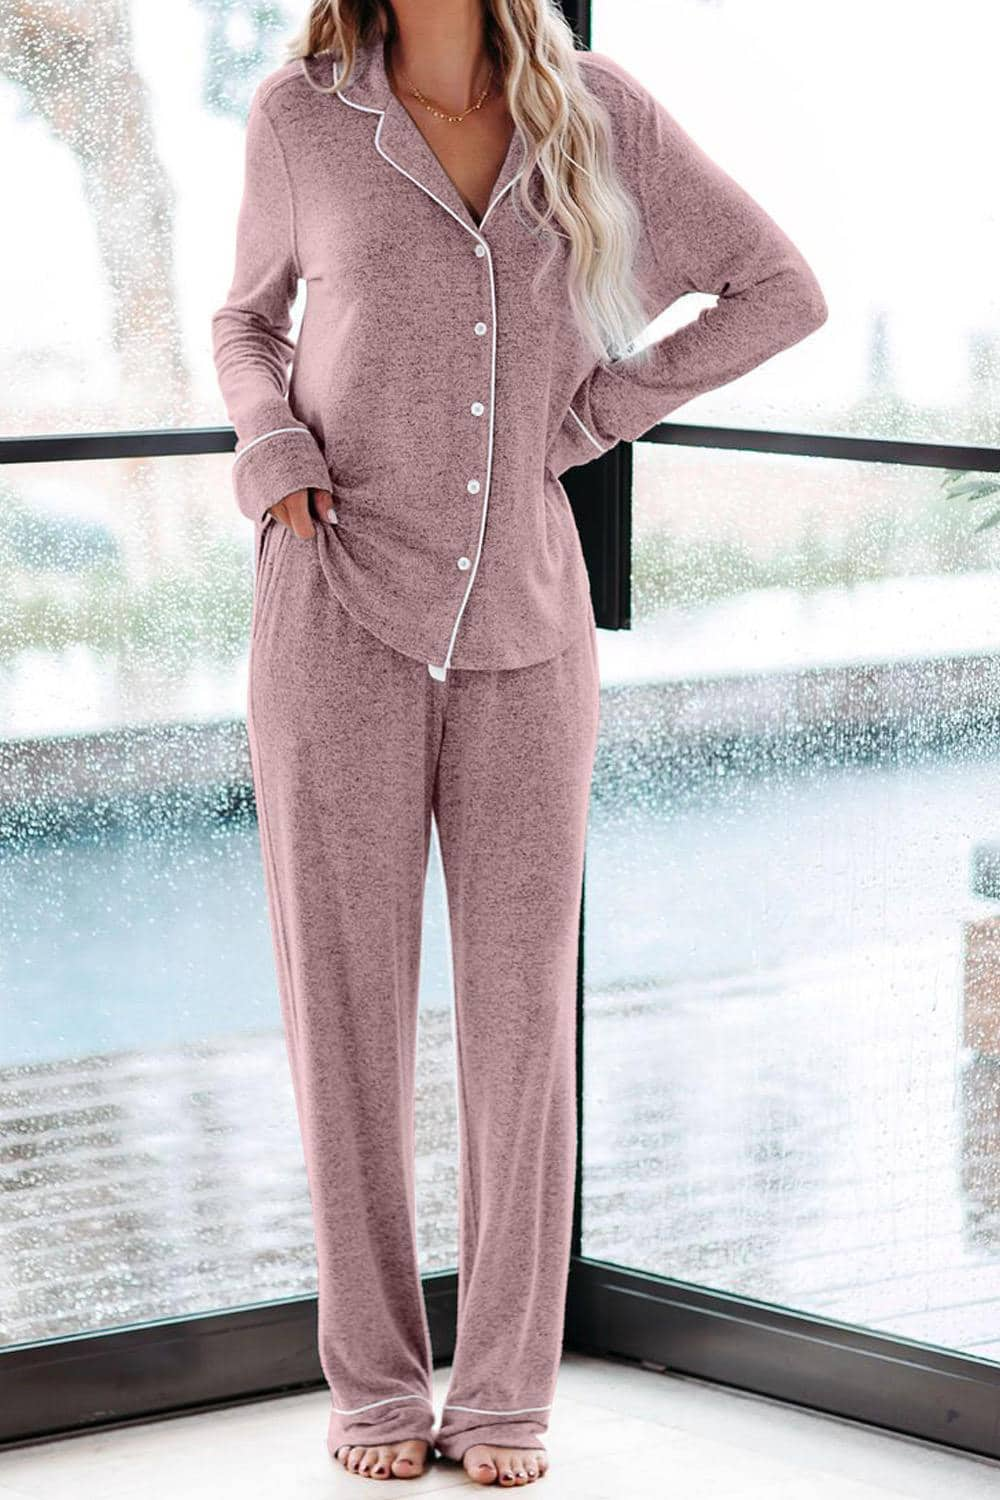 Cozy Two Piece Drawstring Loungewear Sets For Women